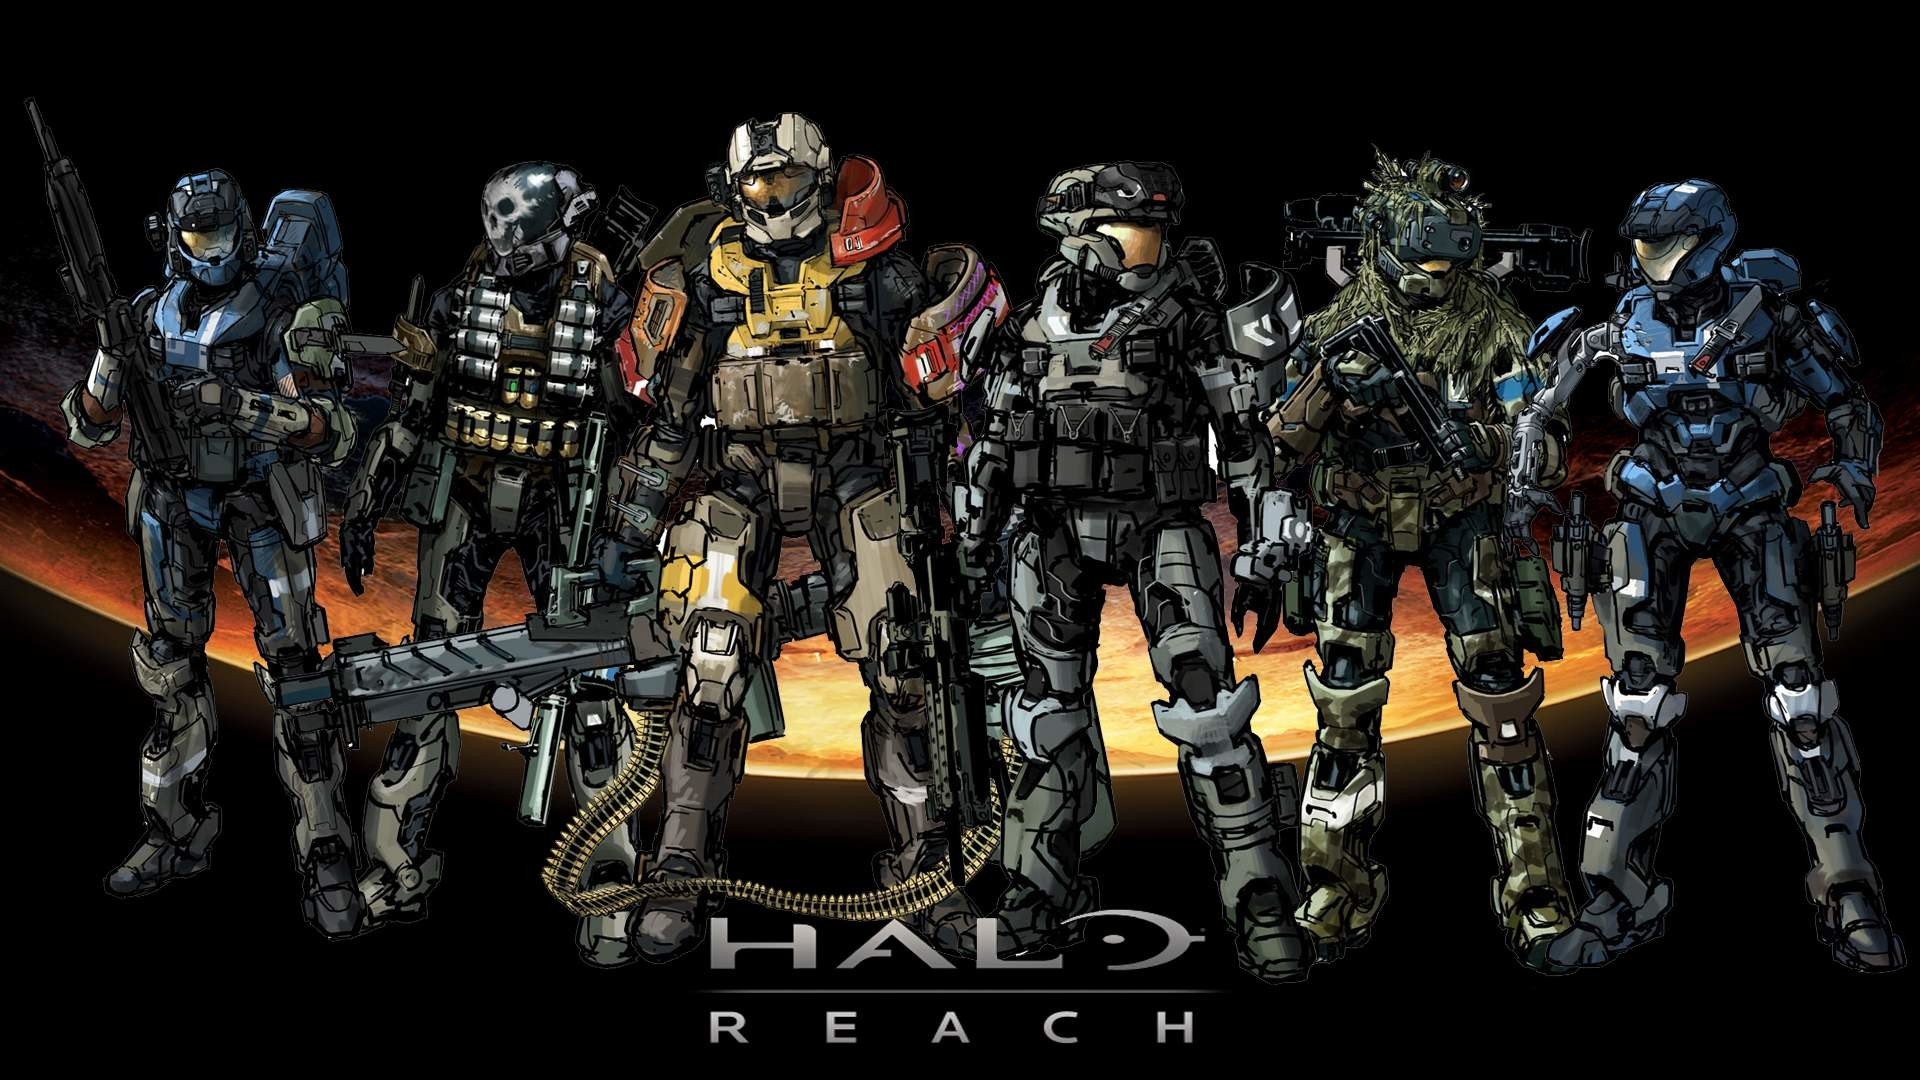 Halo Reach Hd Wallpapers and Background